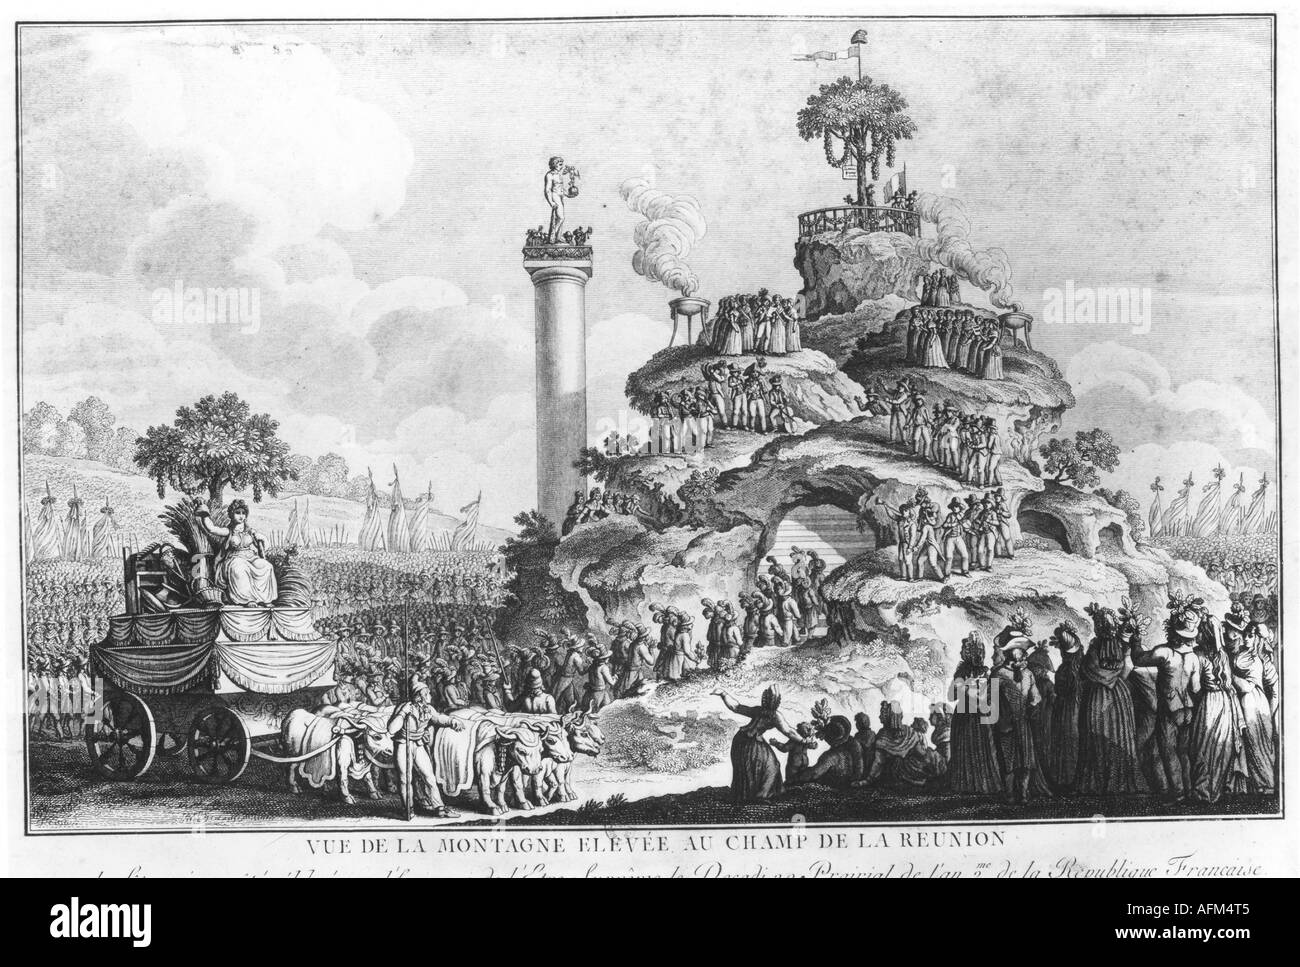 """geography/travel, France, revolution 1789 - 1799, celebration of the """"Supreme Being"""", 20. Prarial II (8.6.1792), Stock Photo"""